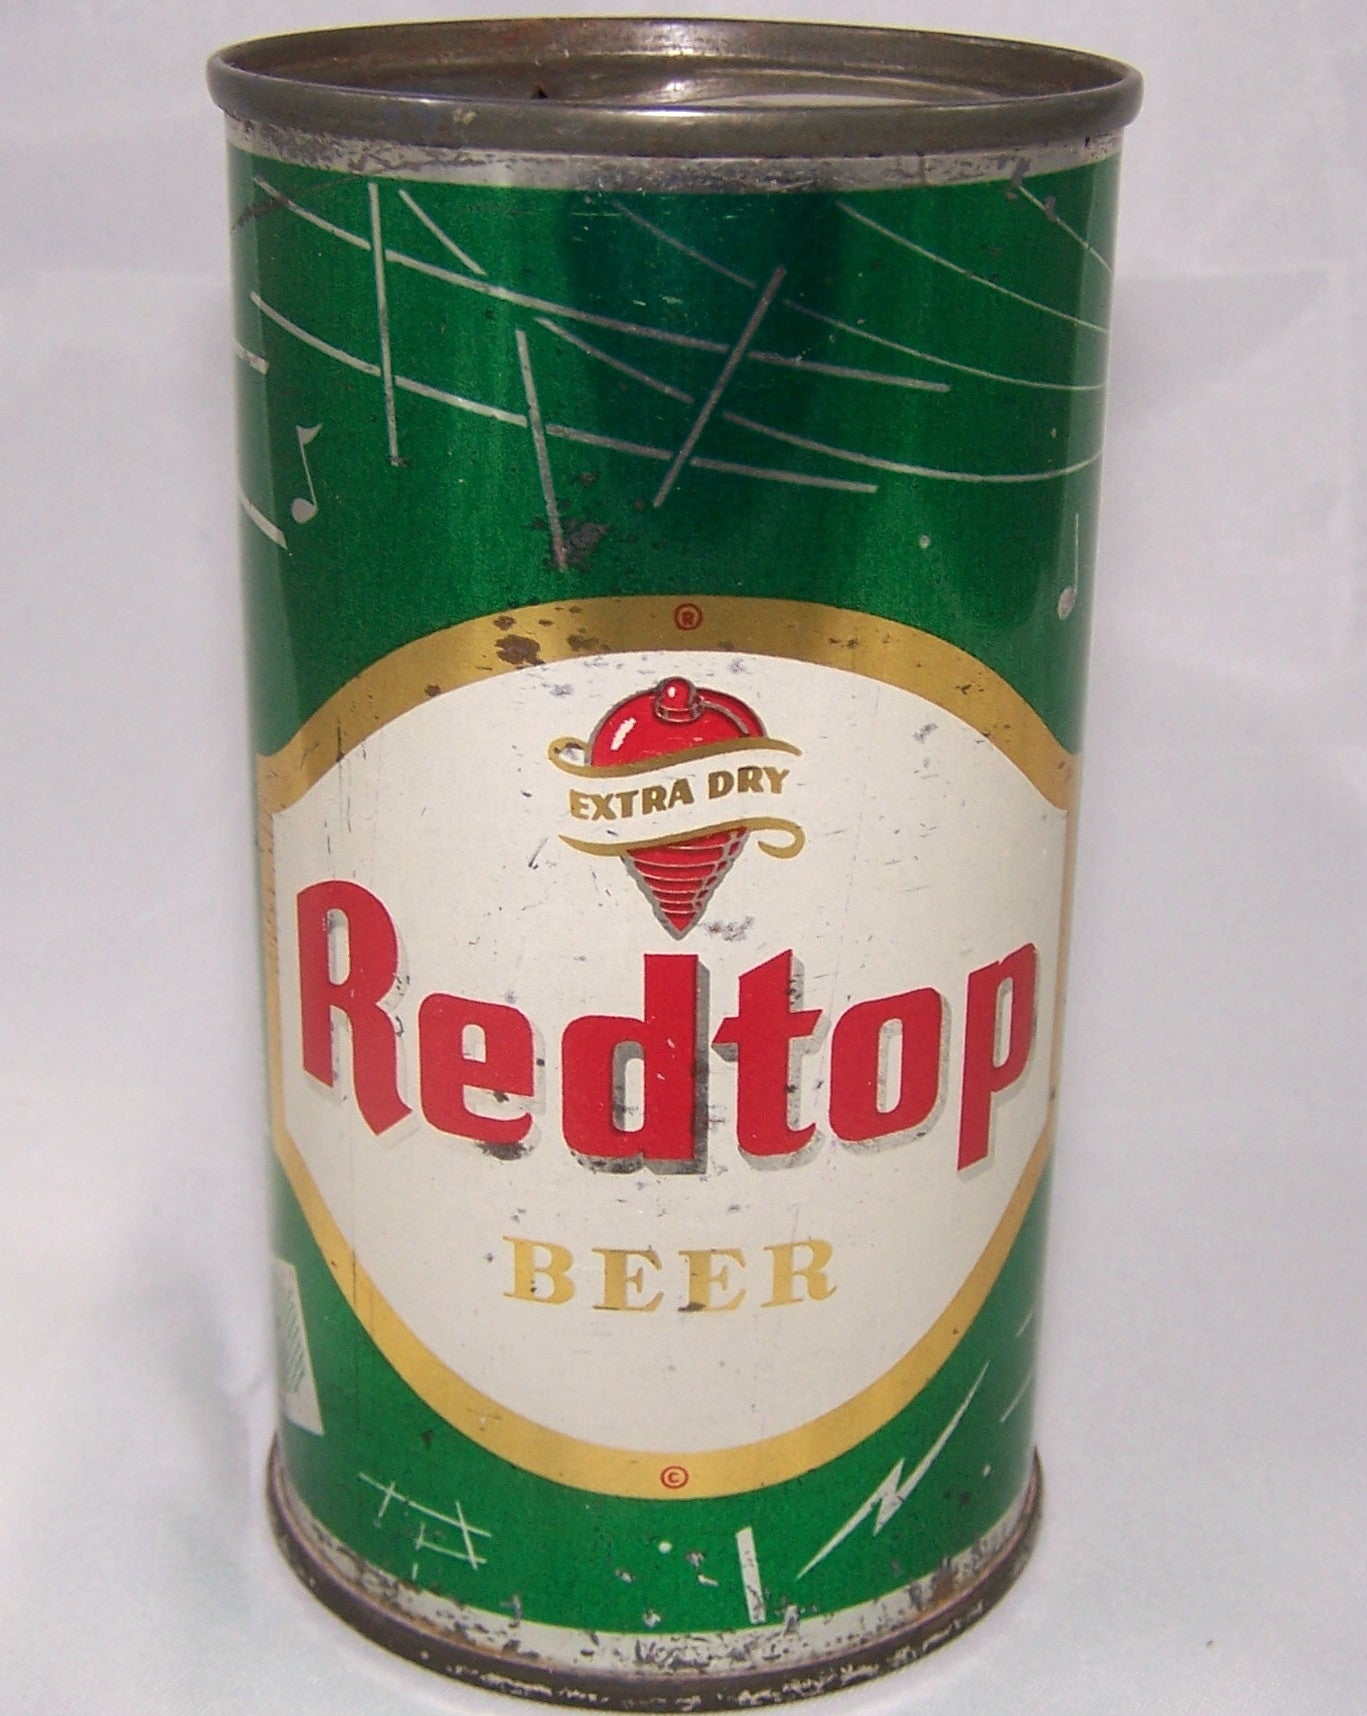 Red Top Beer (Radio) Green, USBC 120-14, Grade 1/1- Traded 7/11/15